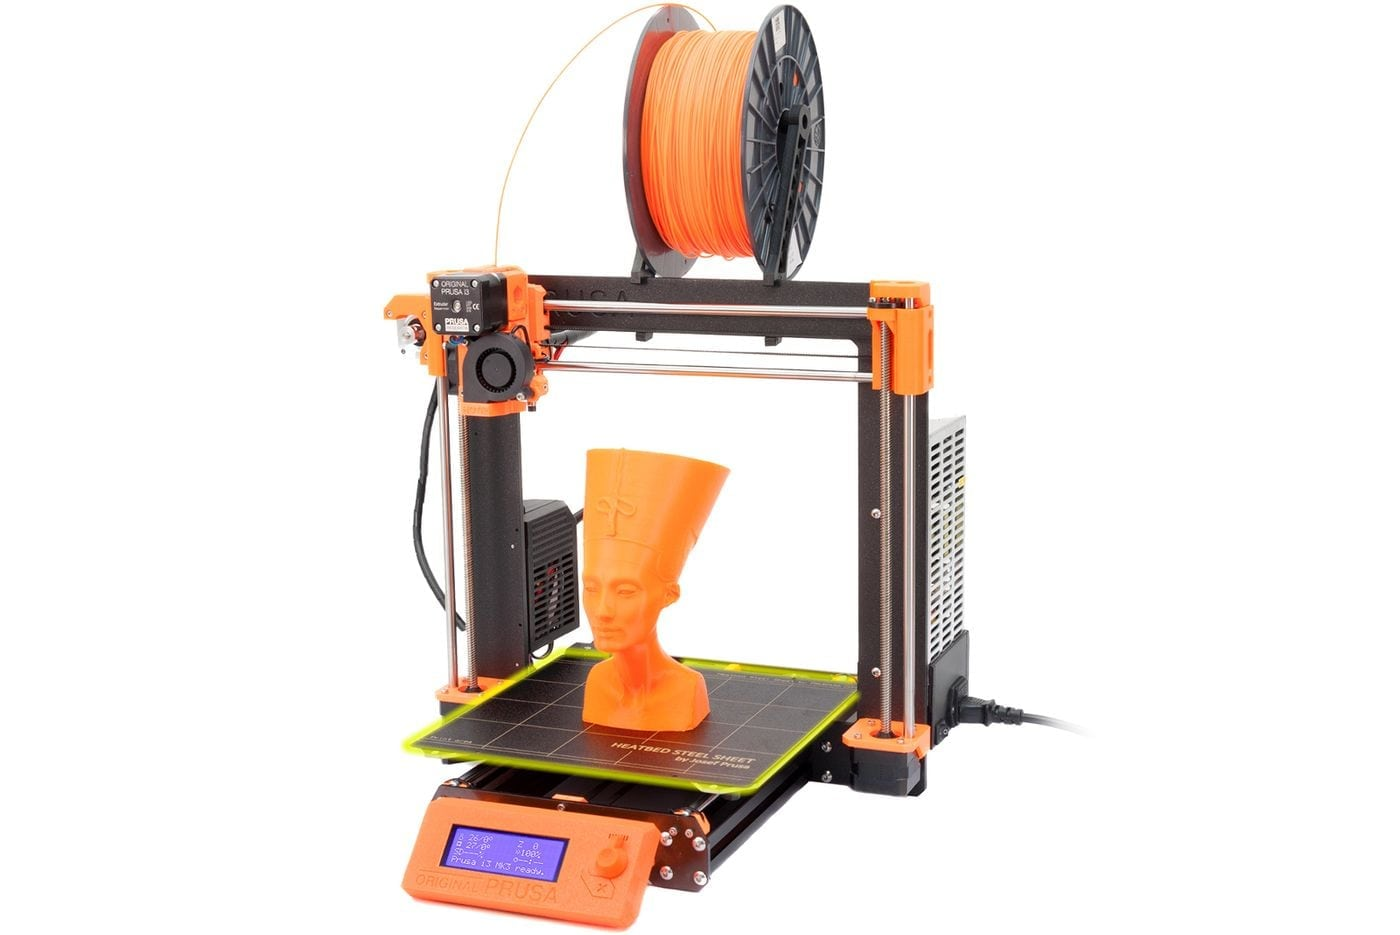 Bad 3d Planer 5 Best 3d Printers For Miniatures In 2019 Our Top Picks